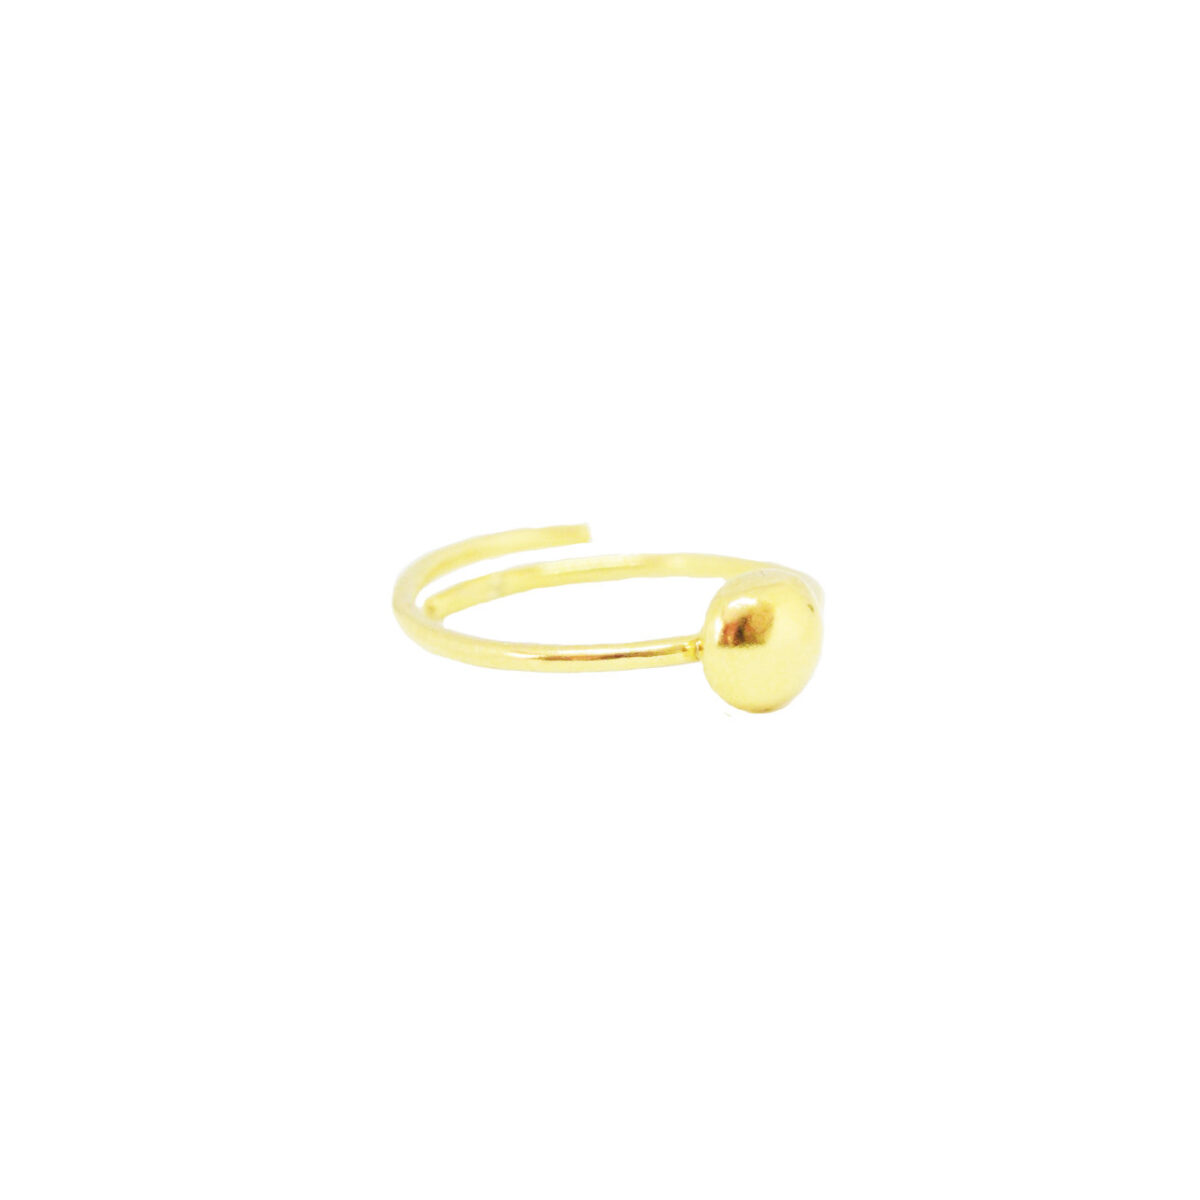 Mini Droplet ring II gold plated